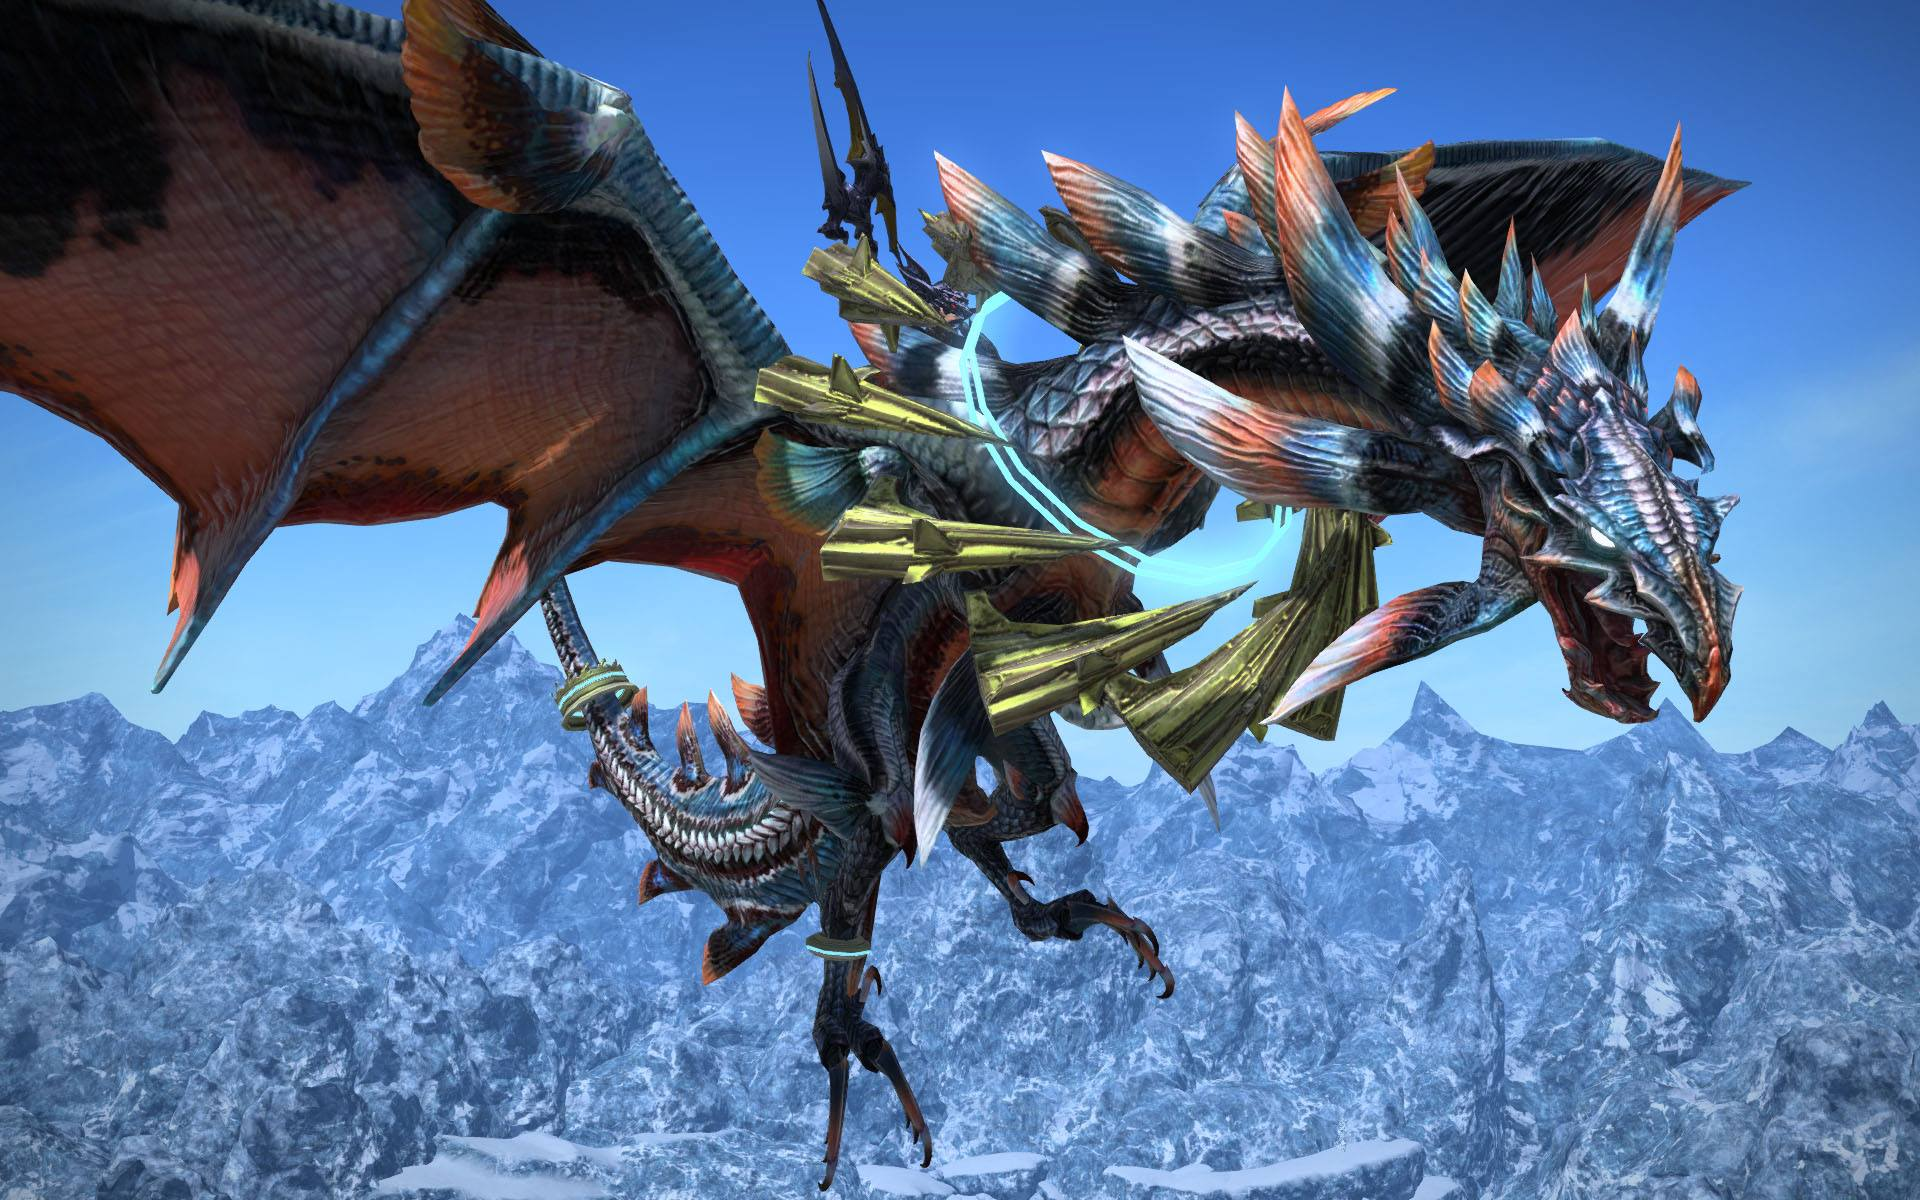 Final Fantasy Xiv Online A Realm Reborn Images Pivotal Gamers